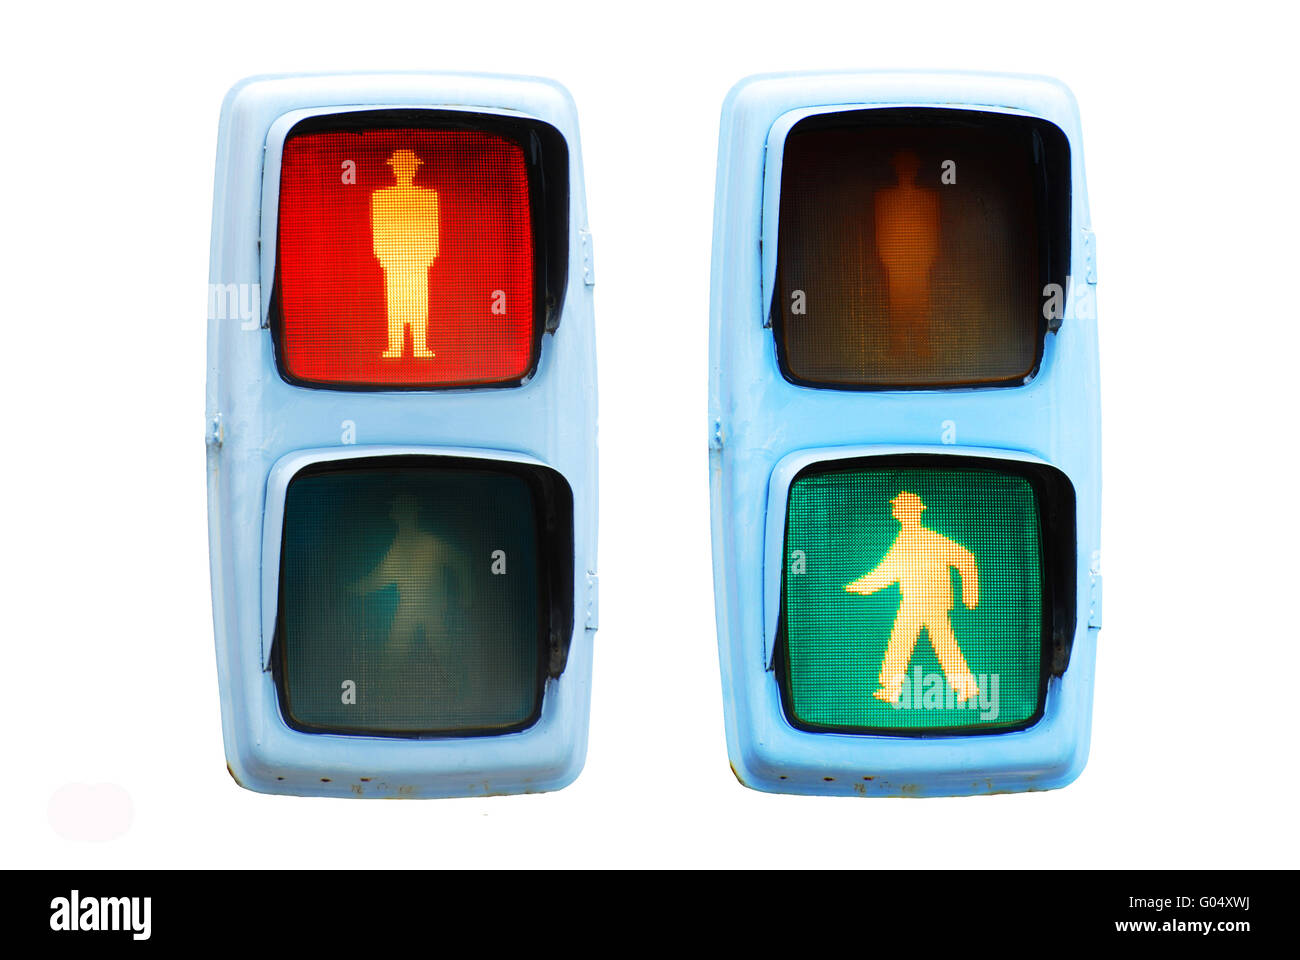 pedestrian traffic lights red and green walk sign - Stock Image